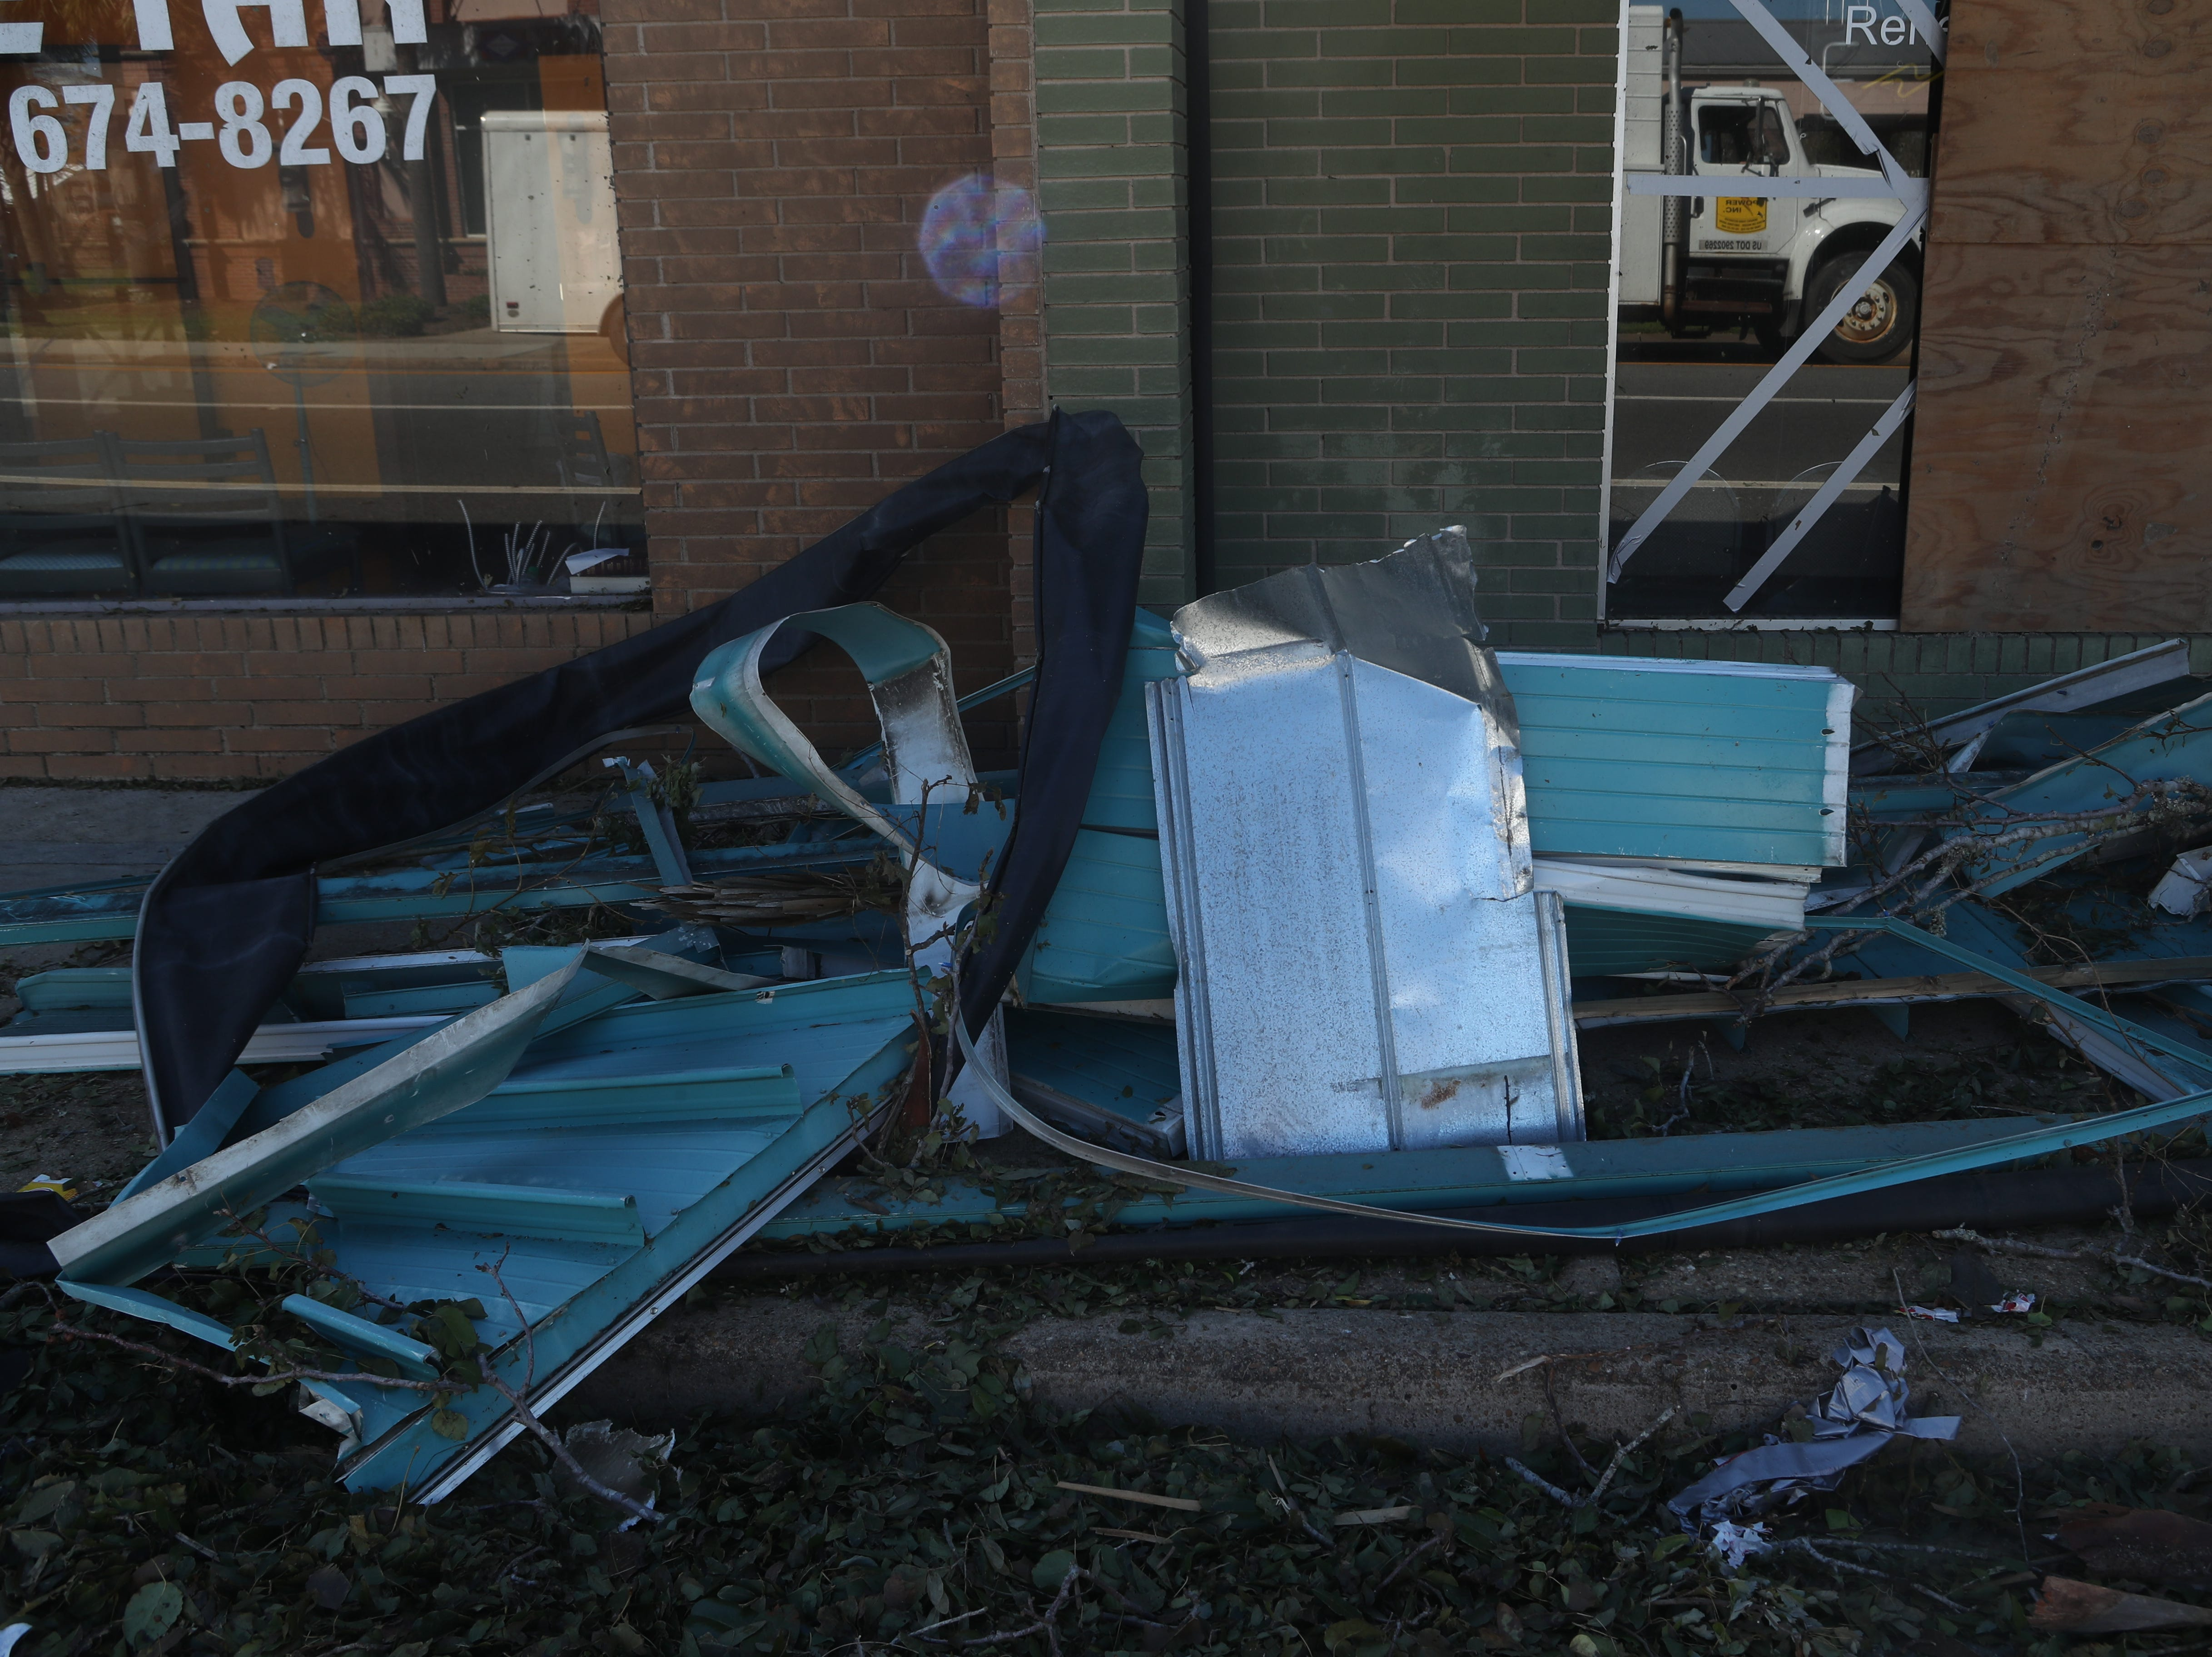 Damage is widespread in Blountstown, Fla. and the surrounding Calhoun County in the aftermath of Hurricane Michael Friday, Oct. 12, 2018.